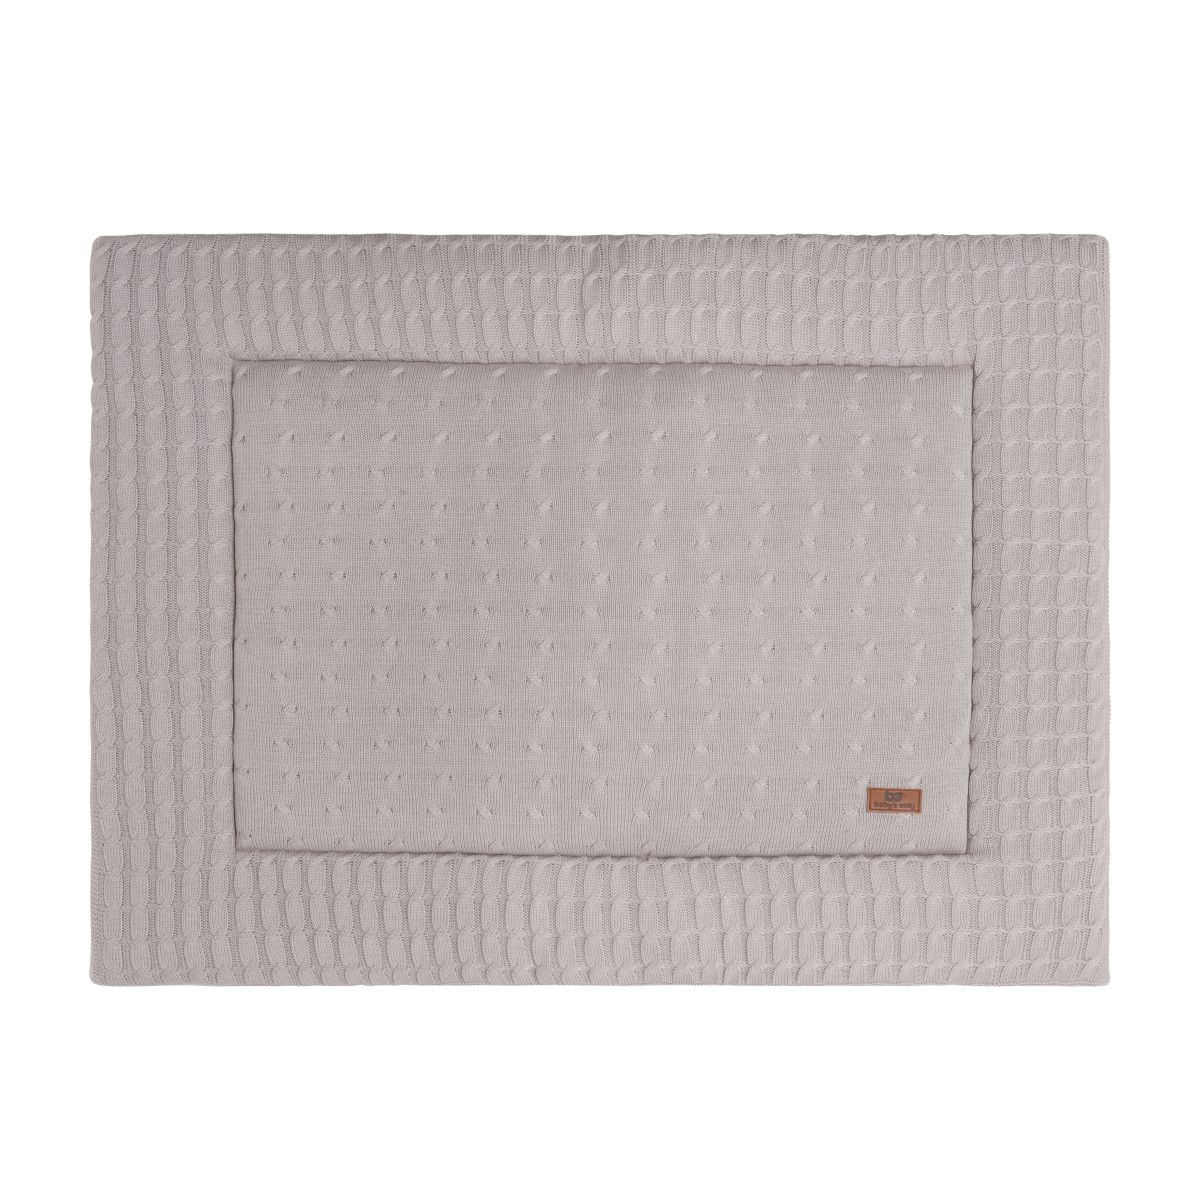 babys only bo01300203648 boxkleed 75x95 cm cable leem 1